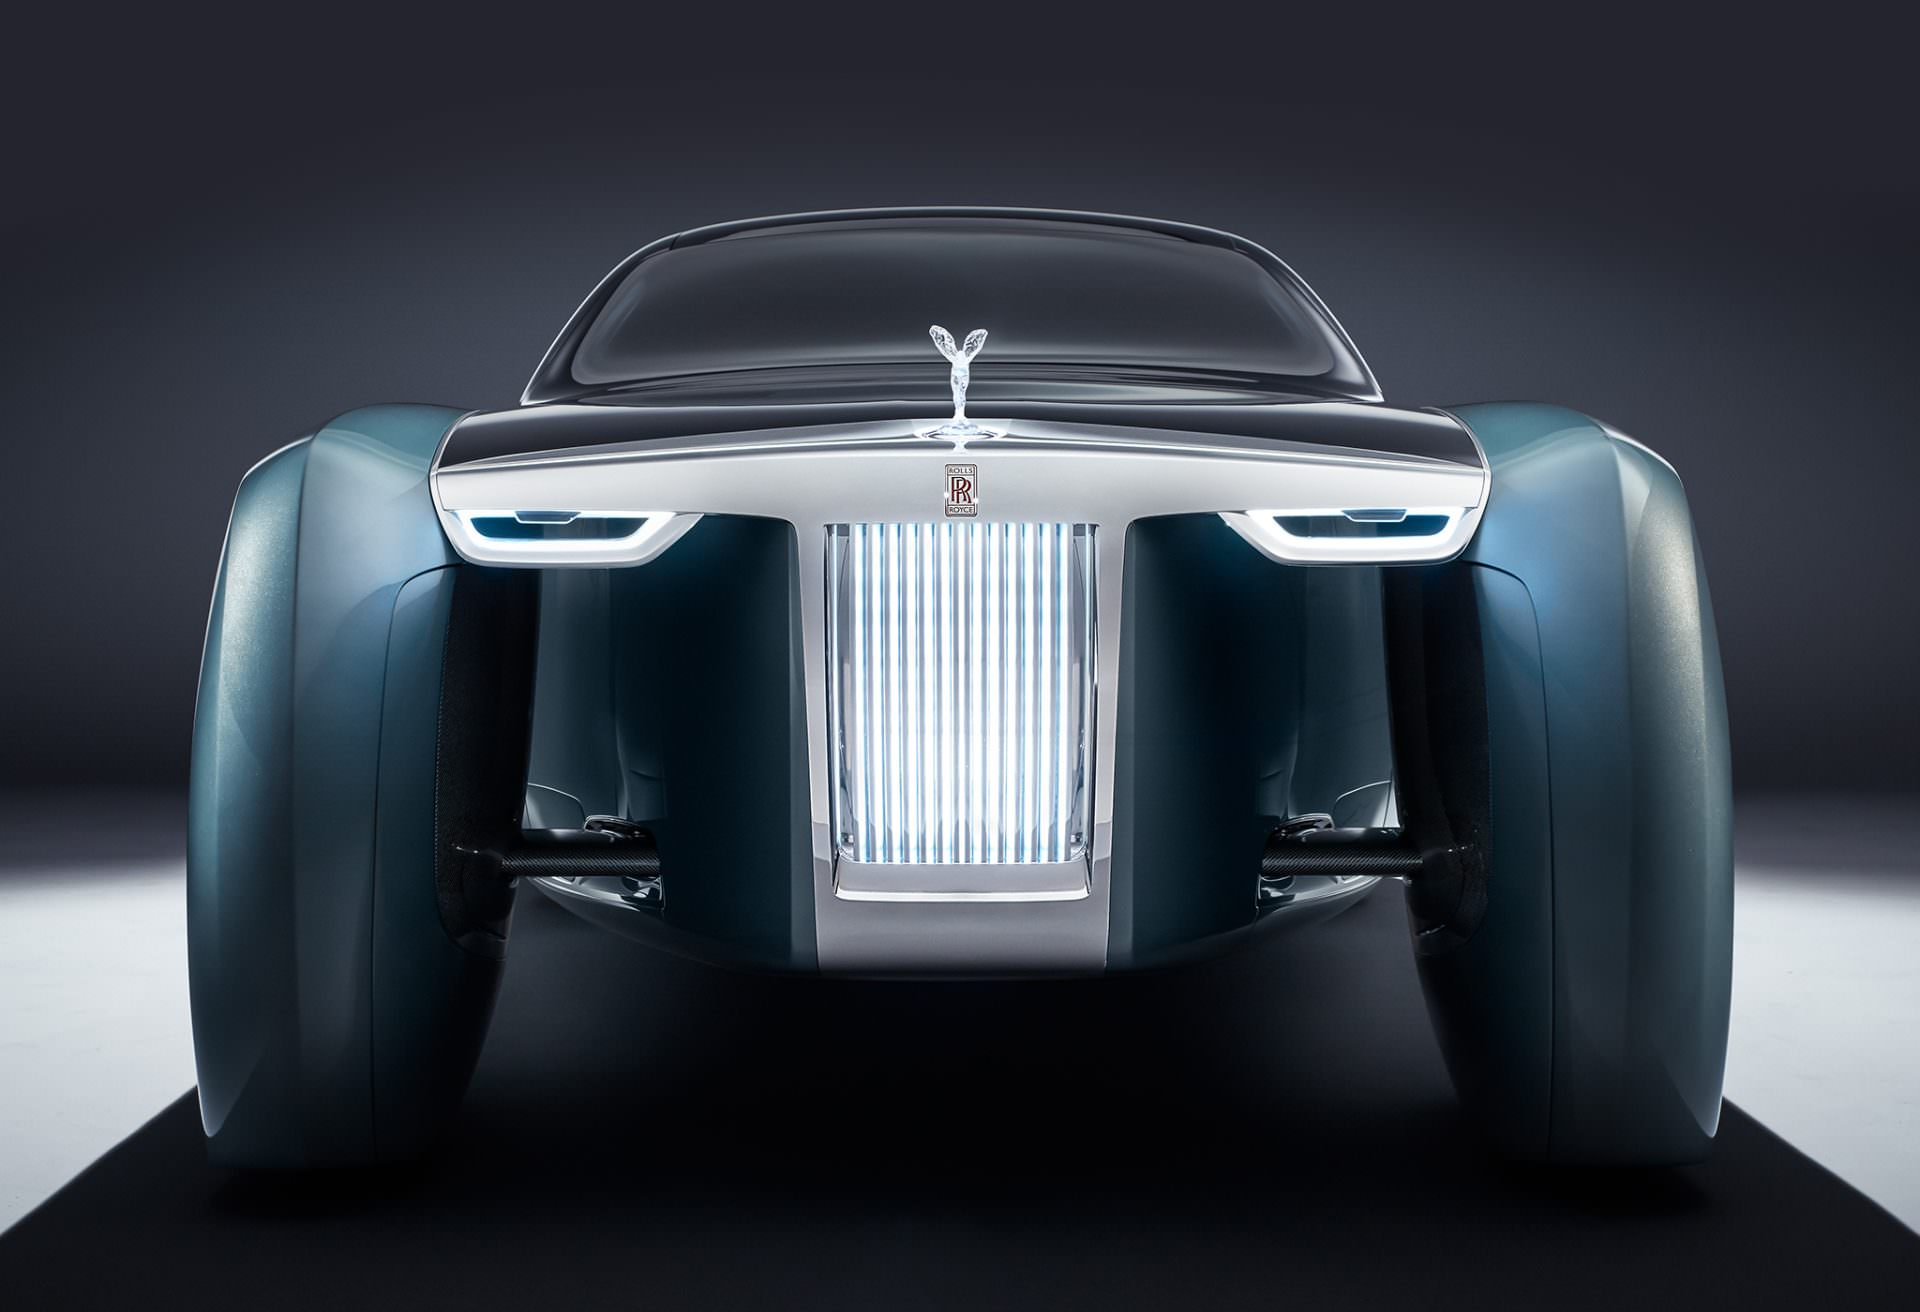 rolls-royce-next-100-concept-car-1